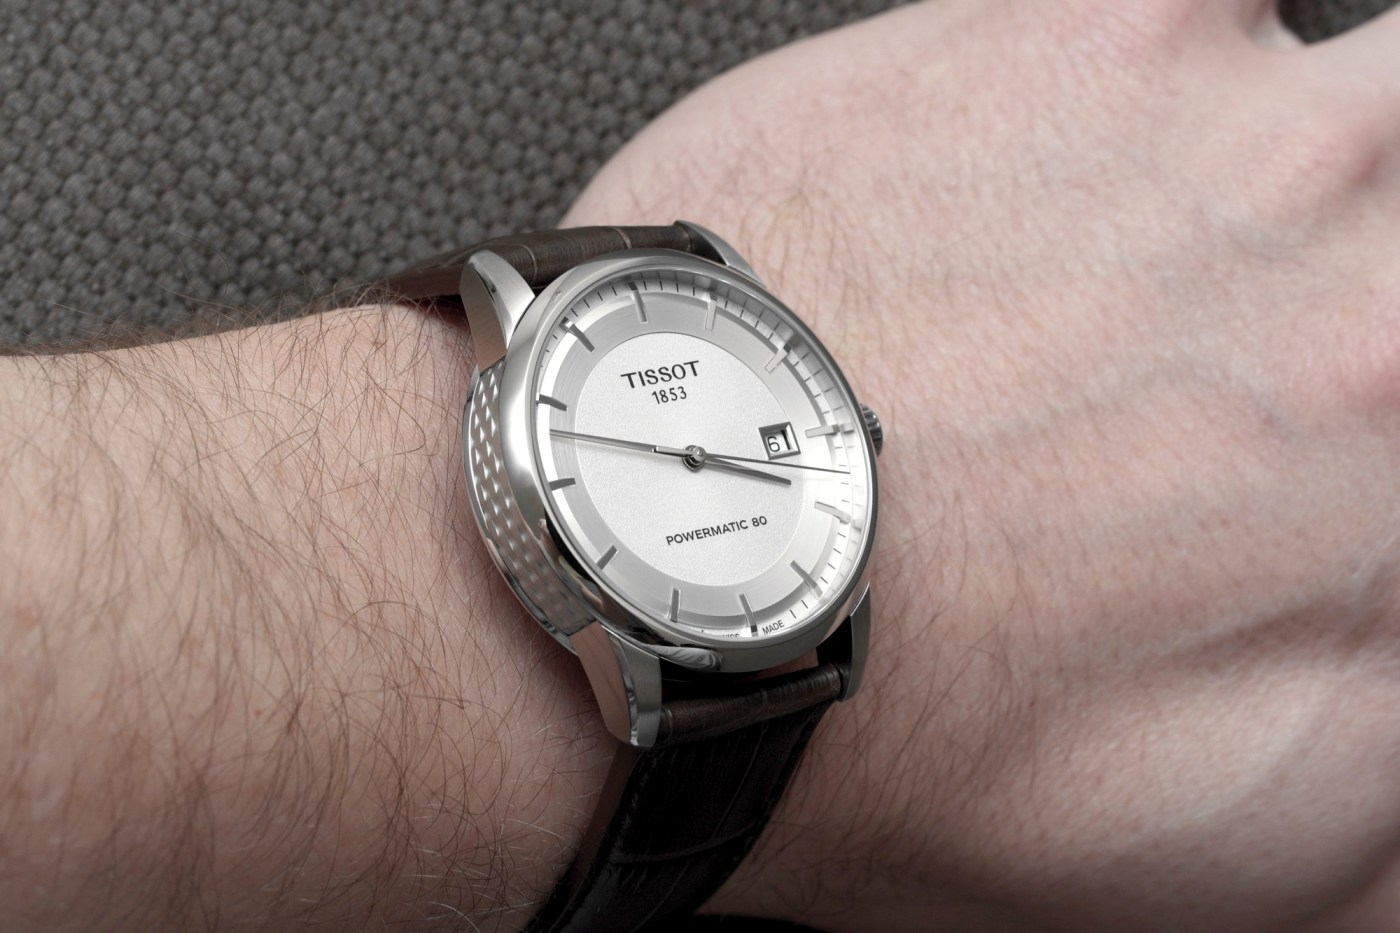 Tissot Powermatic 80 wristshot